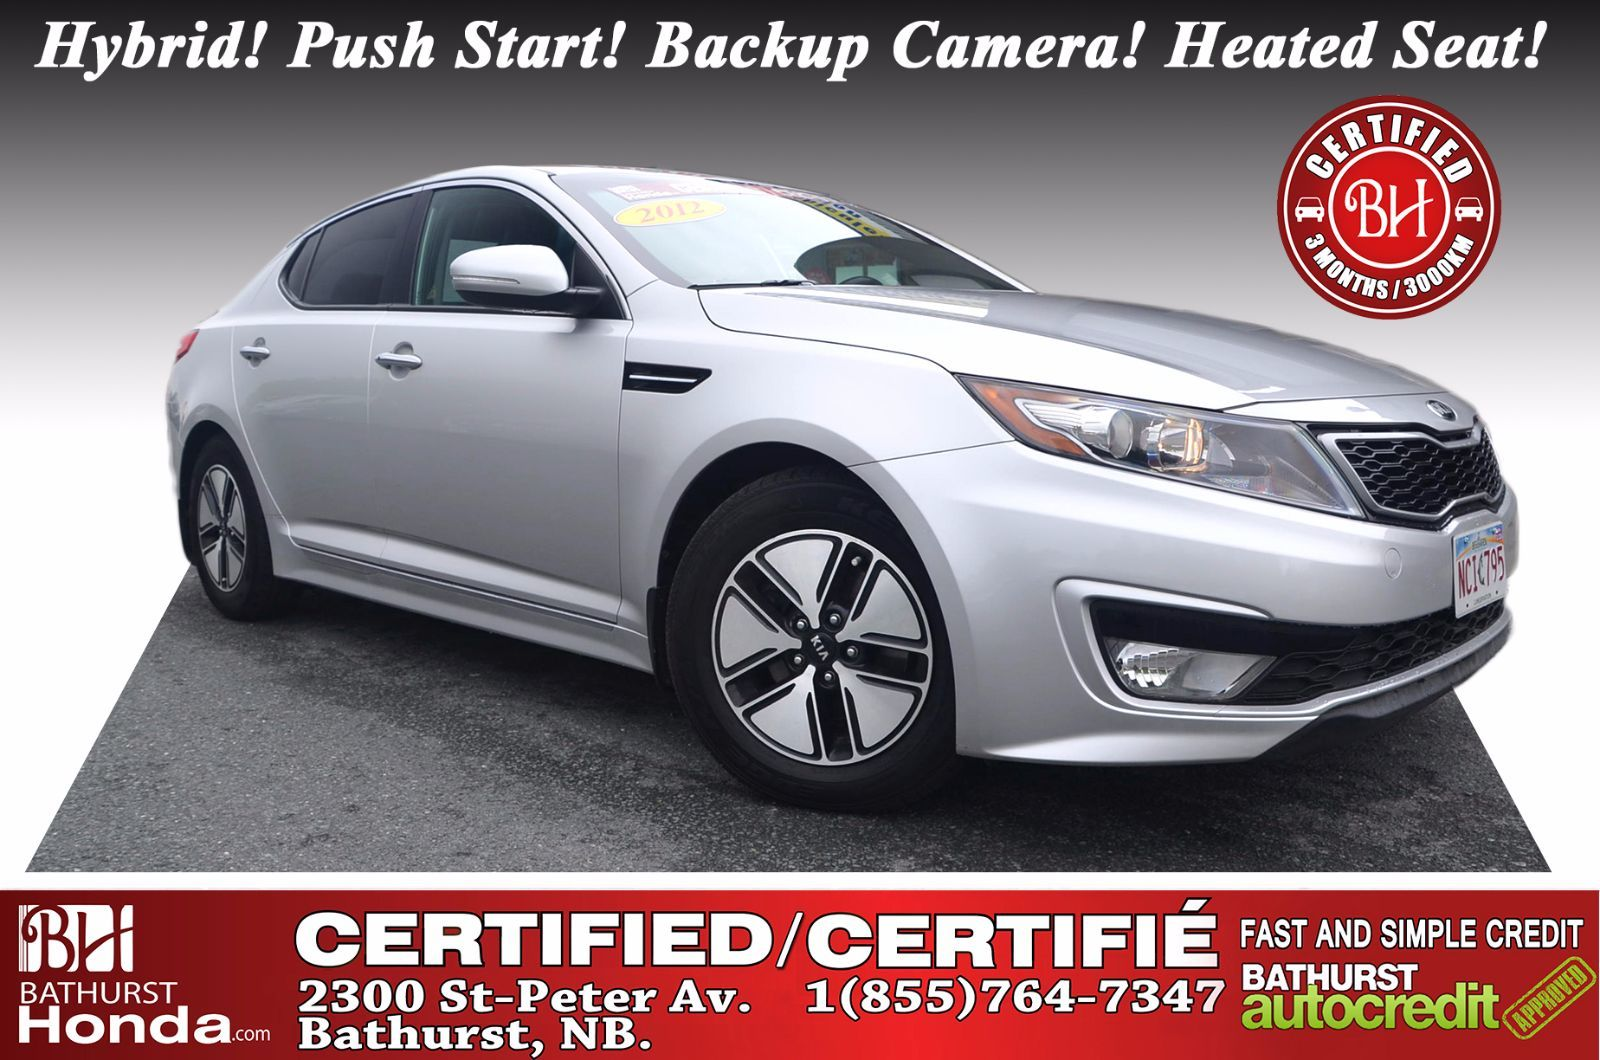 Used 2012 Kia Optima Ex Hybrid At Bathurst Honda P3522 Rear View Camera